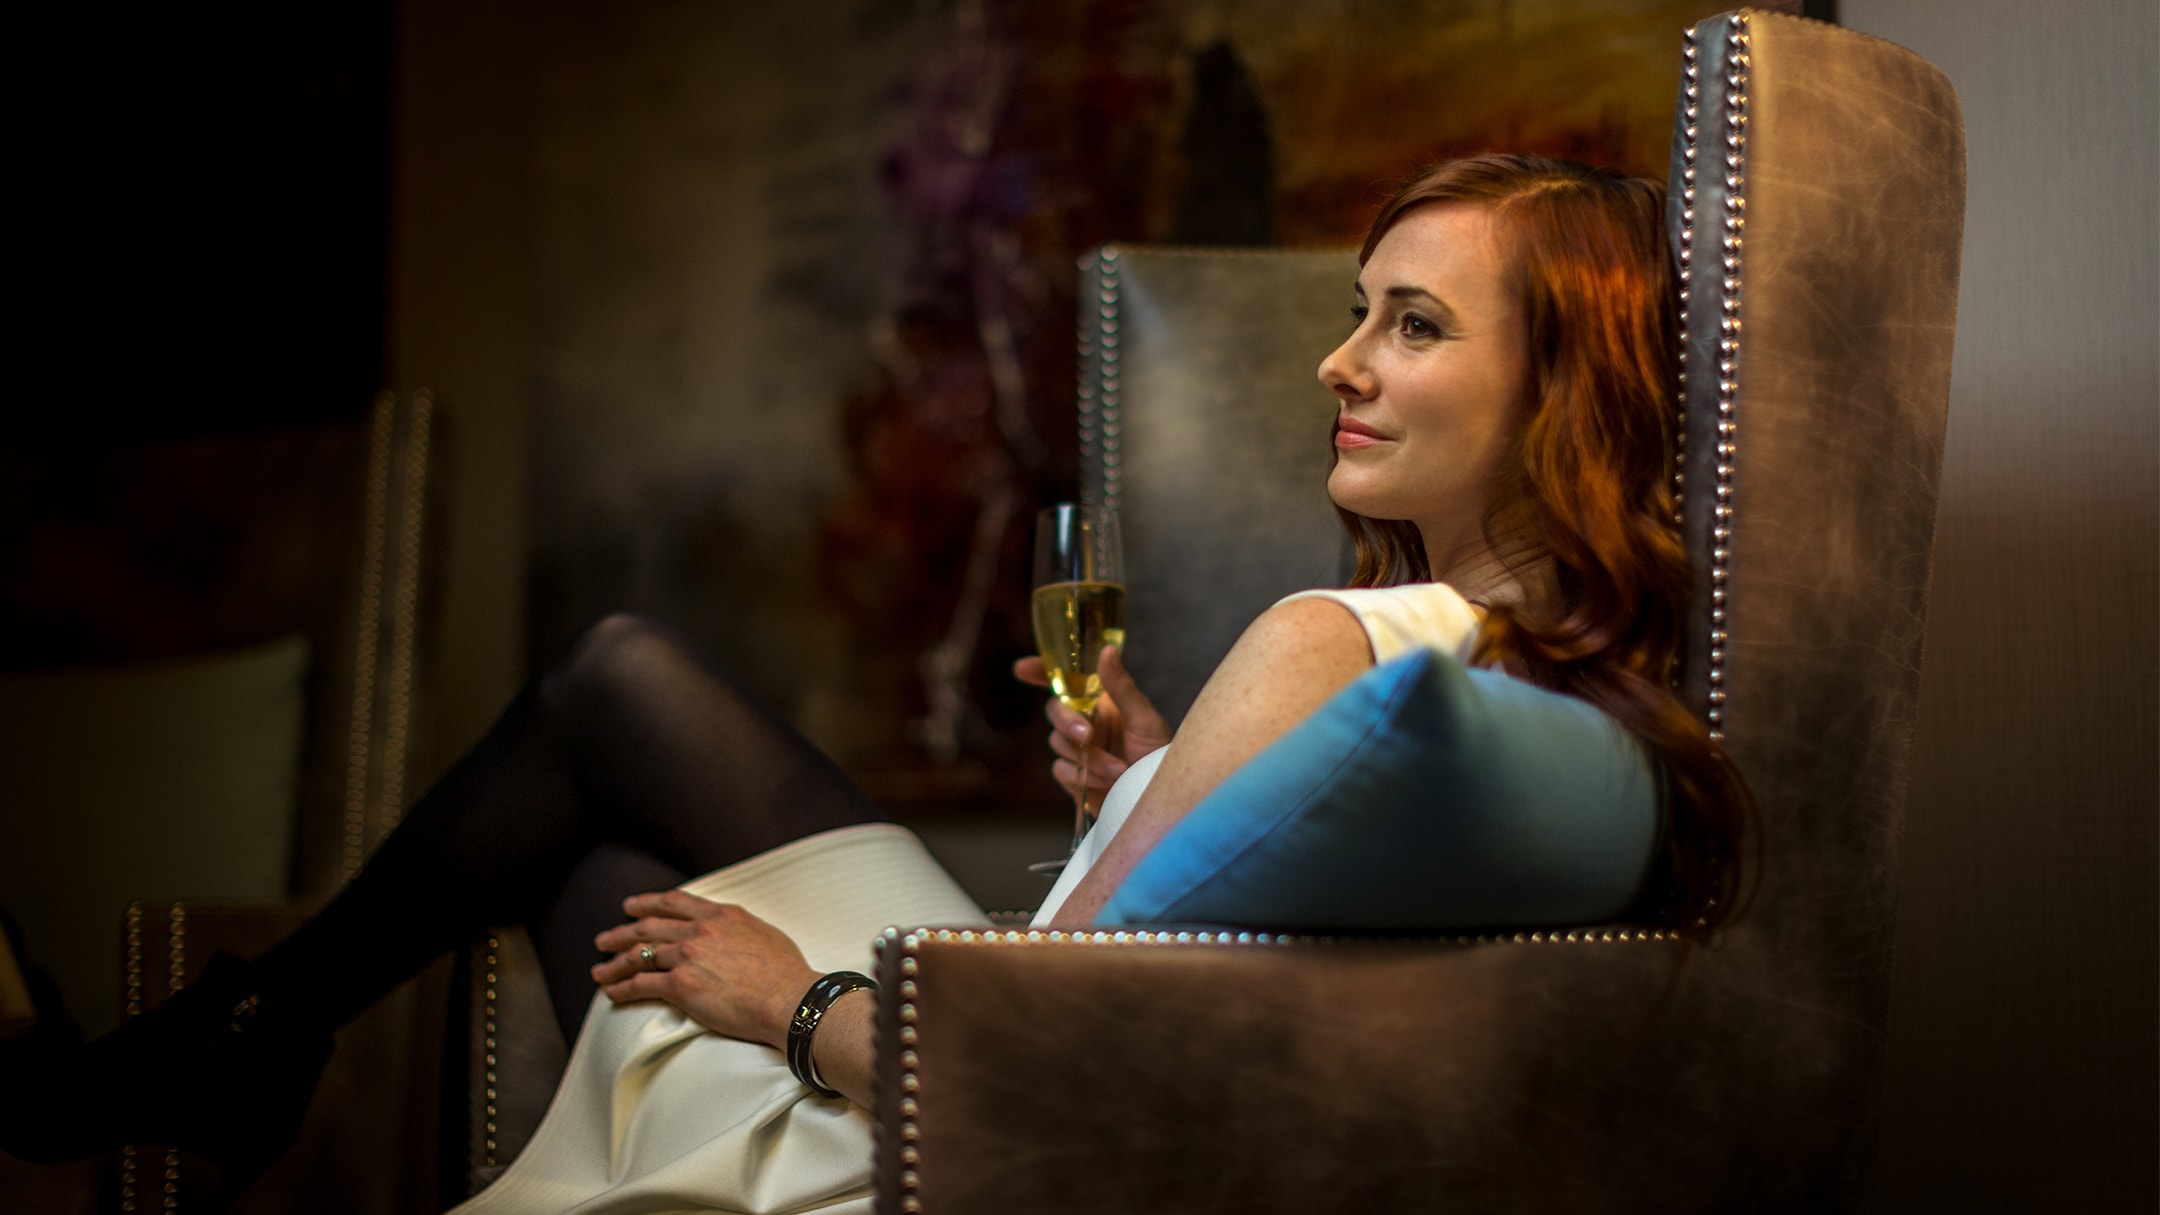 woman lounging in arm chair with champagne